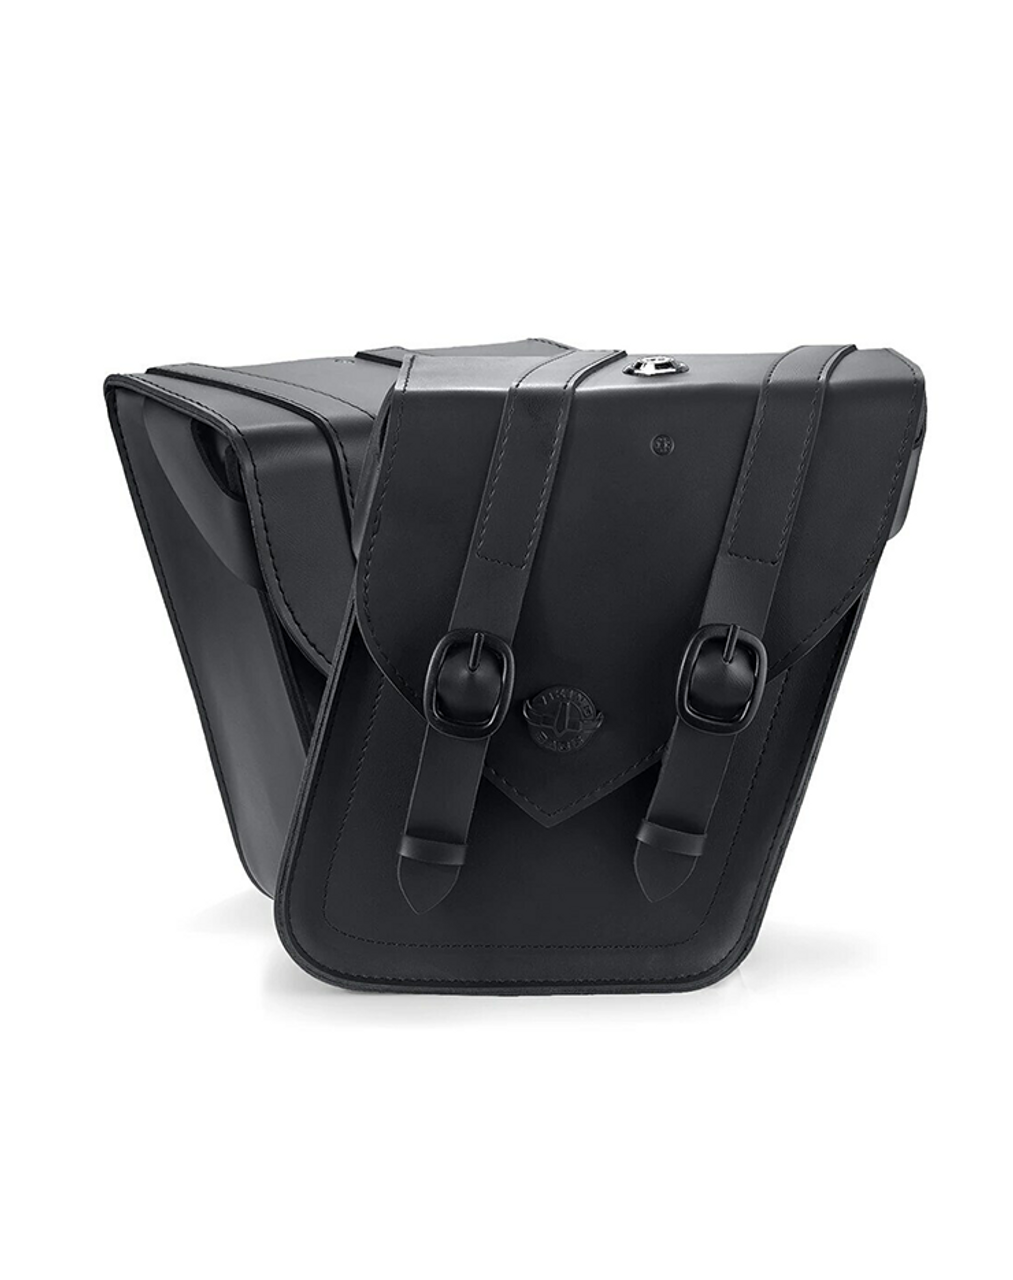 Viking Dark Age Compact Strapped Leather Motorcycle Saddlebags For Sportster 1200 Nightster XL1200N Both bag view